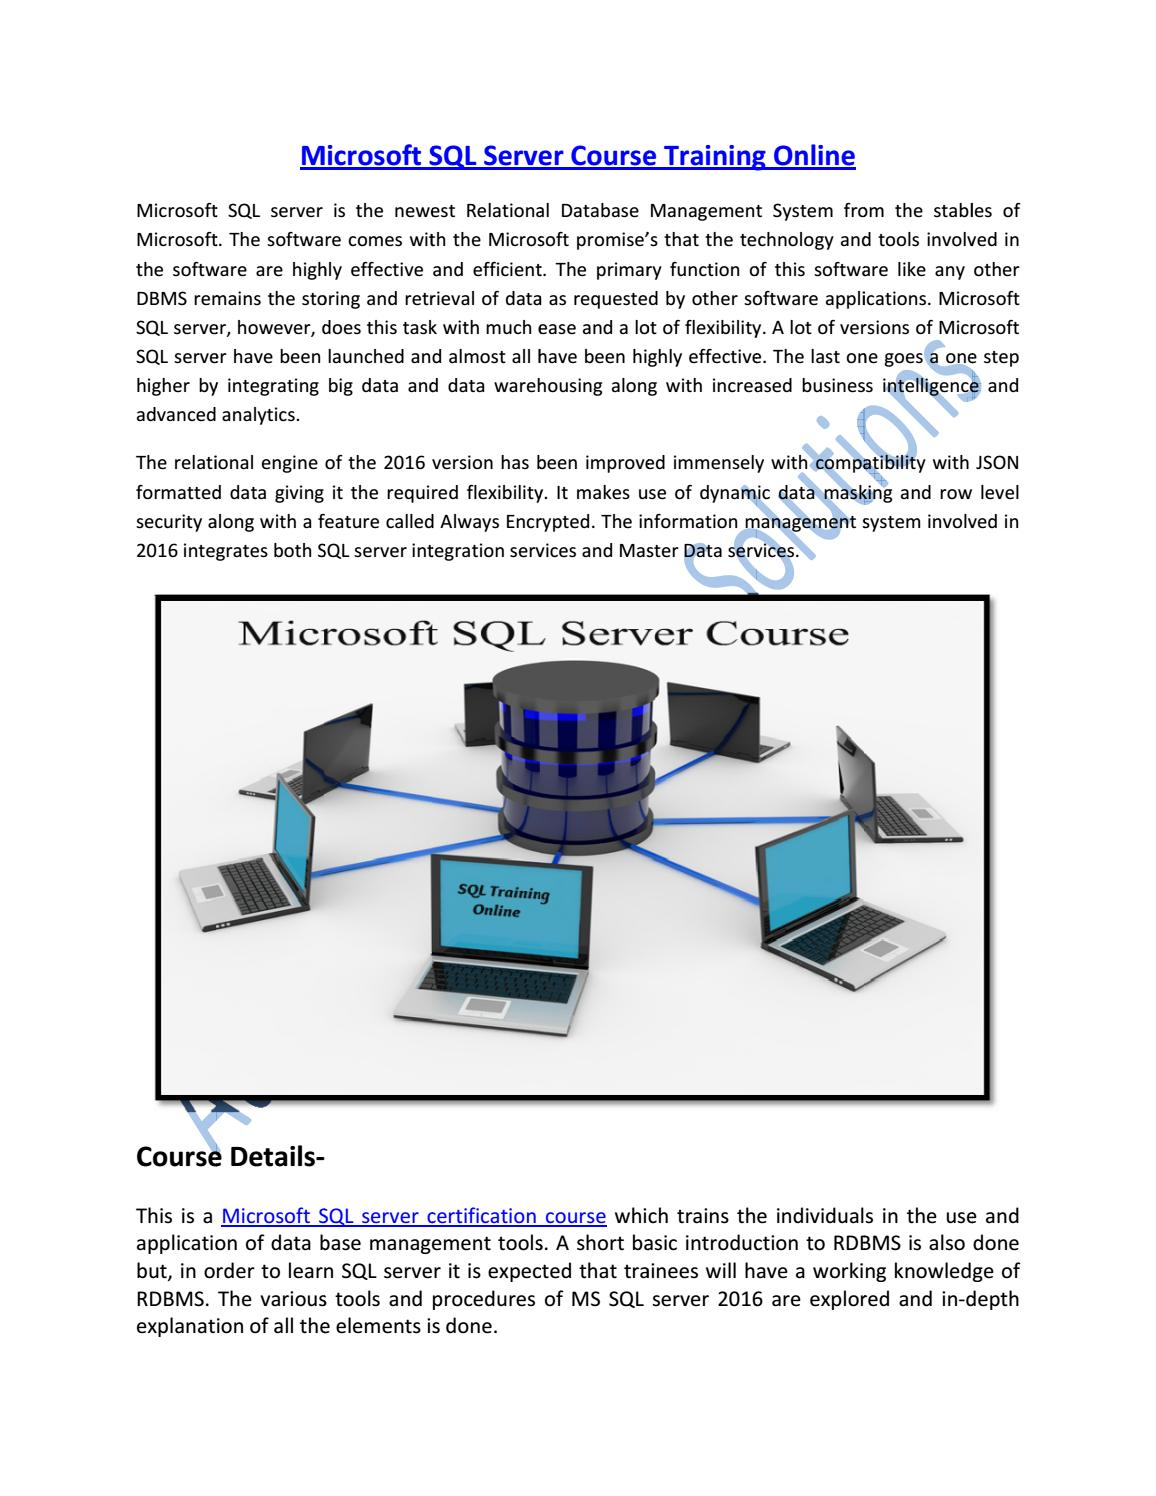 Learn Microsoft Sql Server Certification Course Online By Aurelius